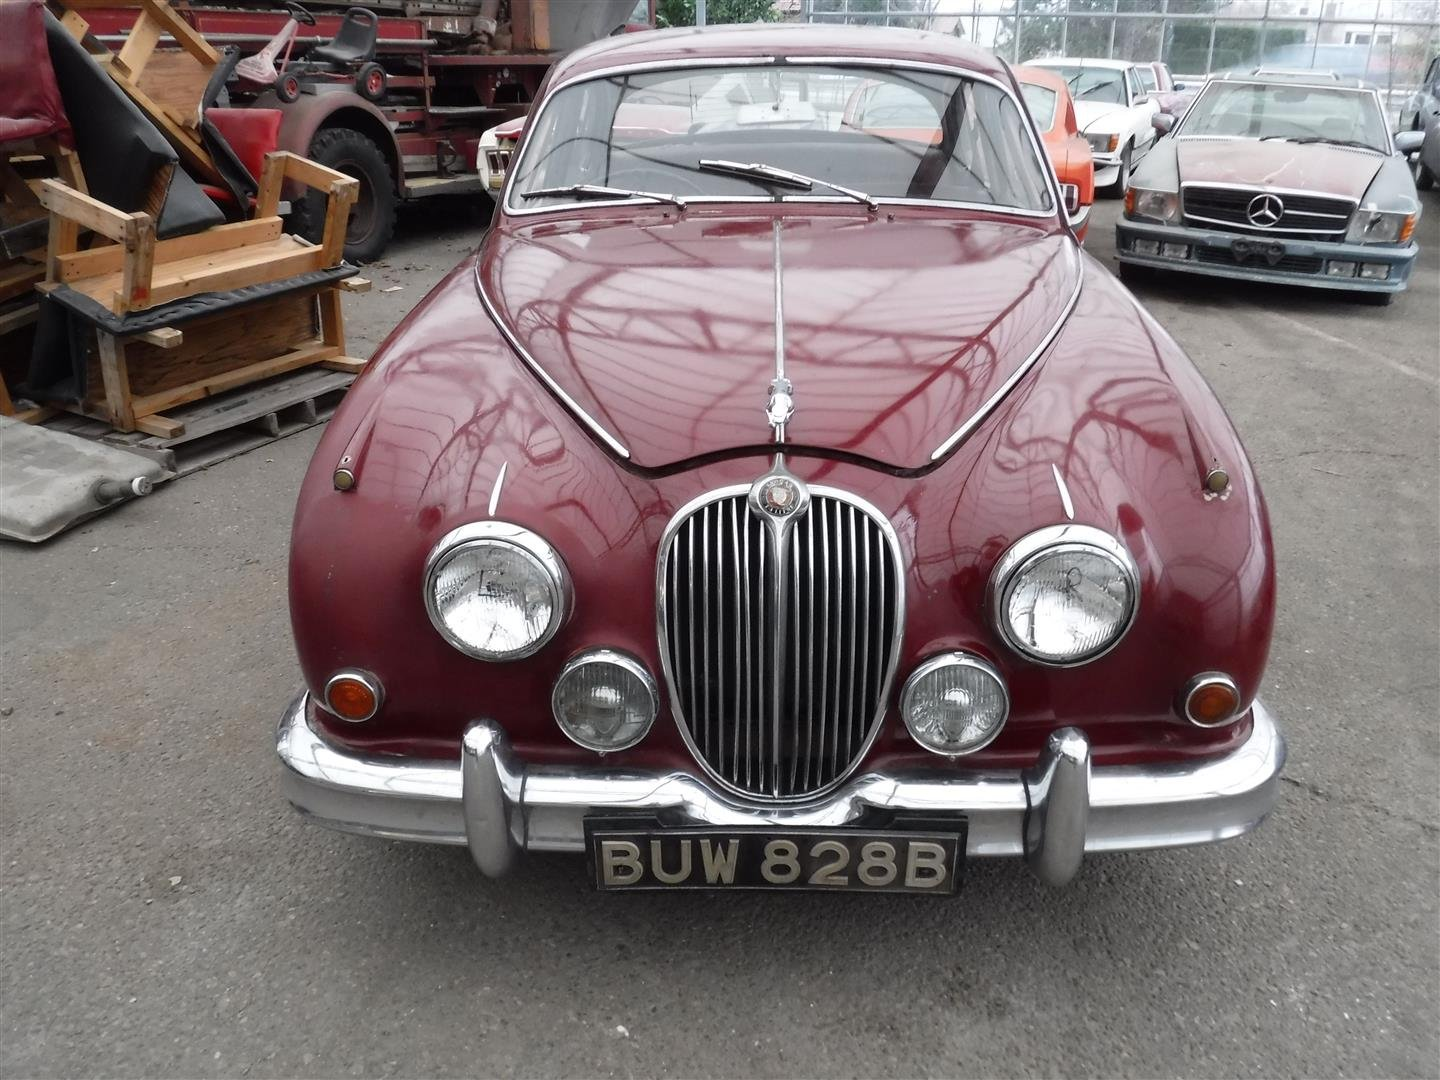 1965 Jaguar MK2  6cil.  RHD For Sale (picture 1 of 6)